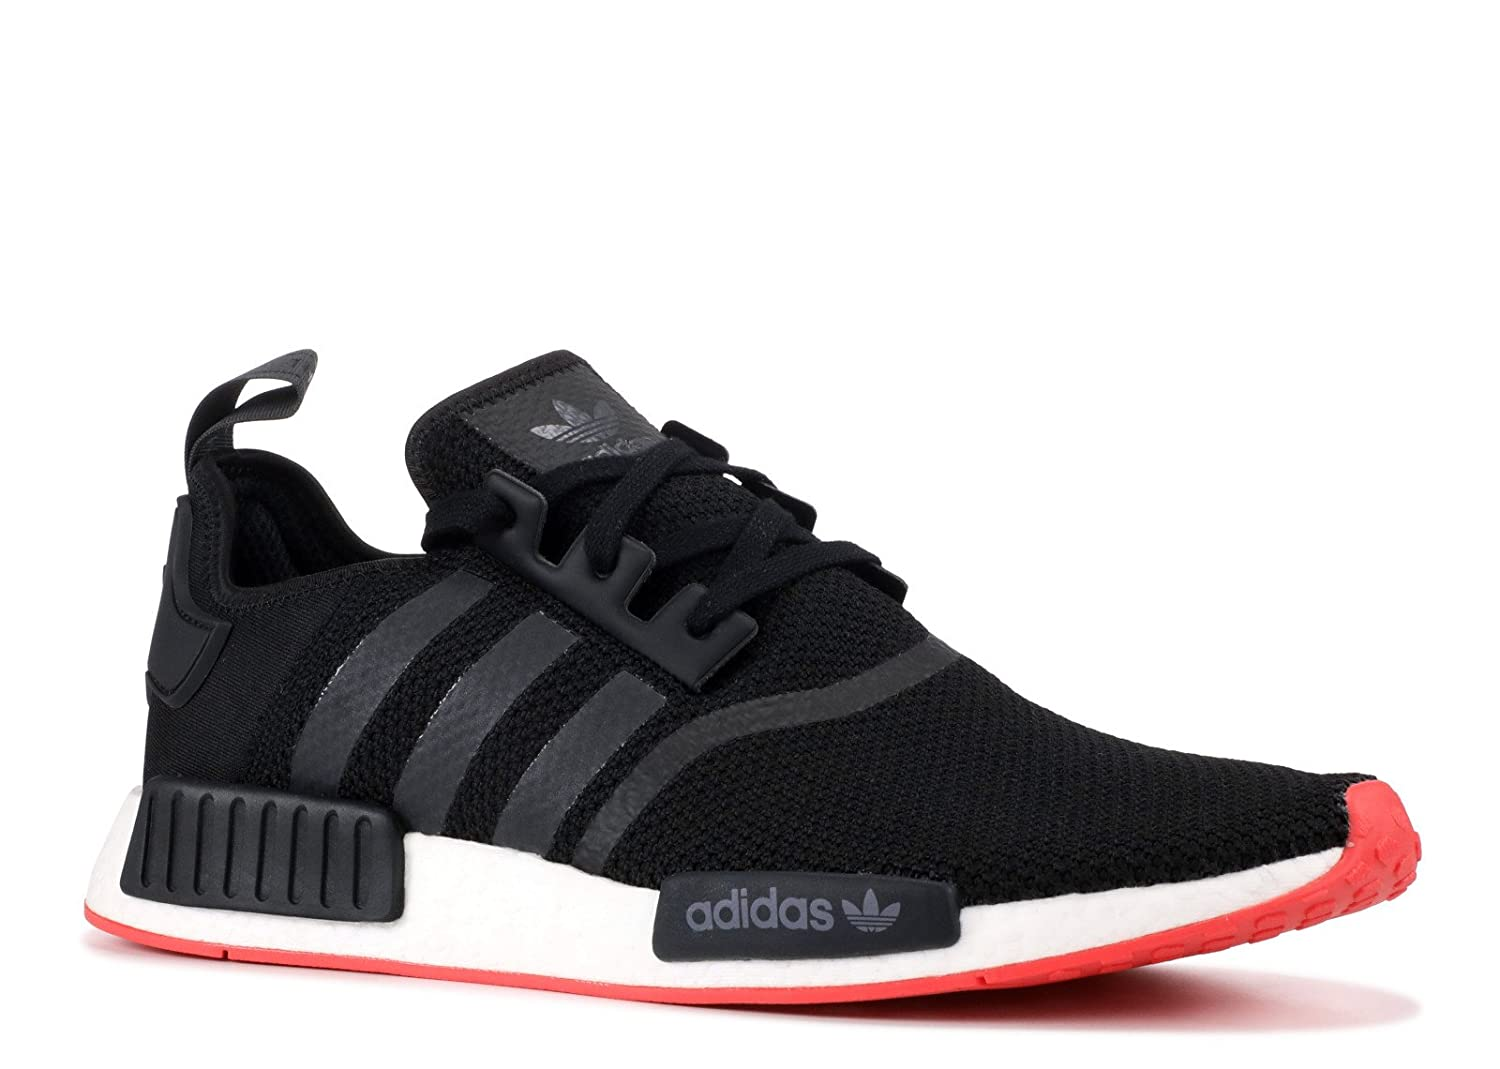 Black Carbon Trace Scarlet adidas Originals Men's